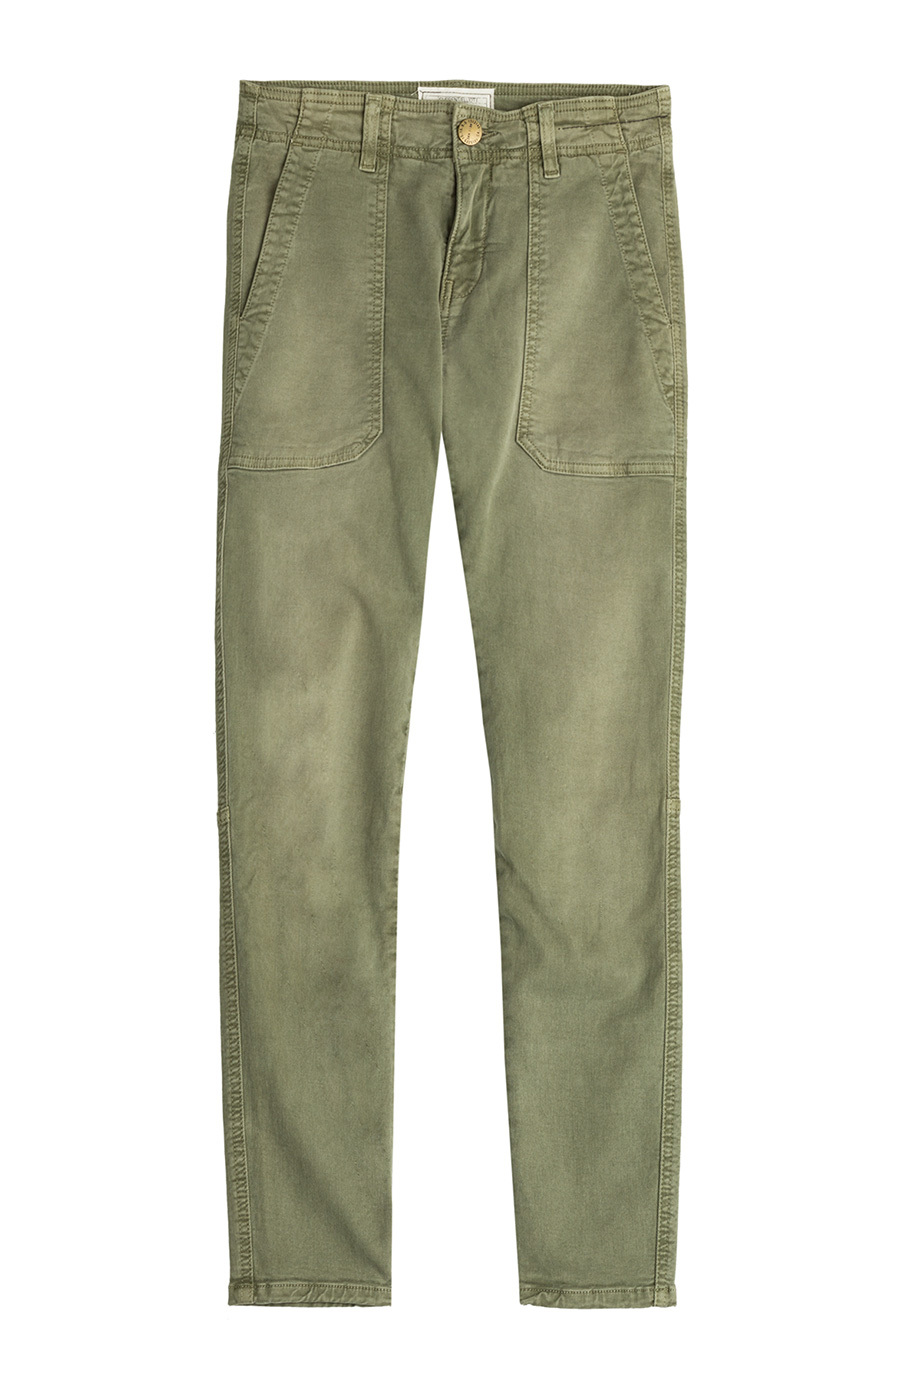 Skinny Cargo Pants - pattern: plain; waist: mid/regular rise; predominant colour: khaki; occasions: casual; length: ankle length; texture group: cotton feel fabrics; fit: slim leg; pattern type: fabric; style: standard; season: s/s 2015; wardrobe: basic